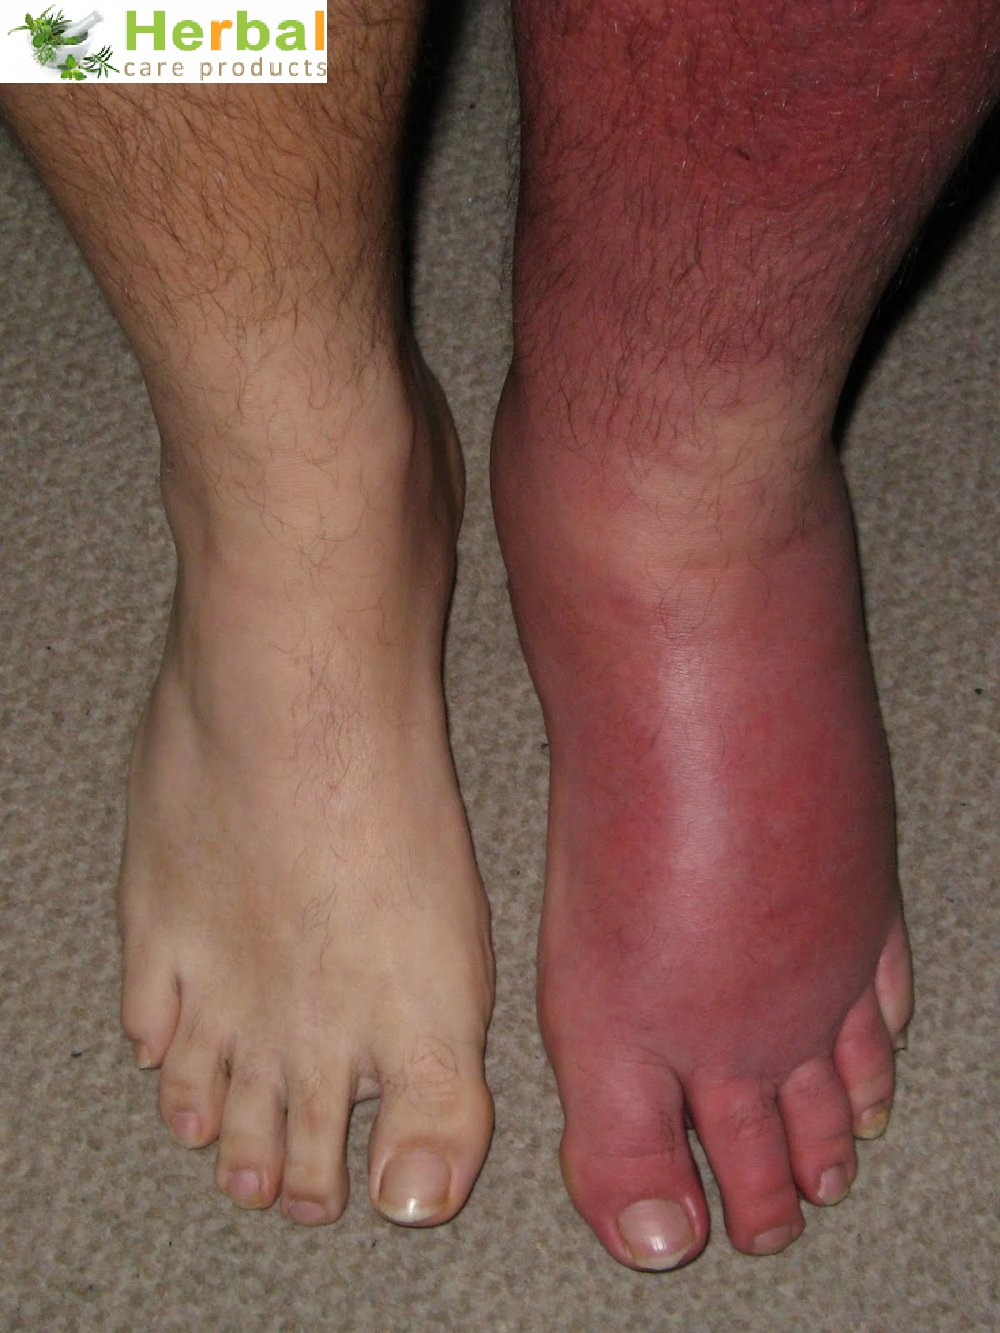 picture of cellulitis #11